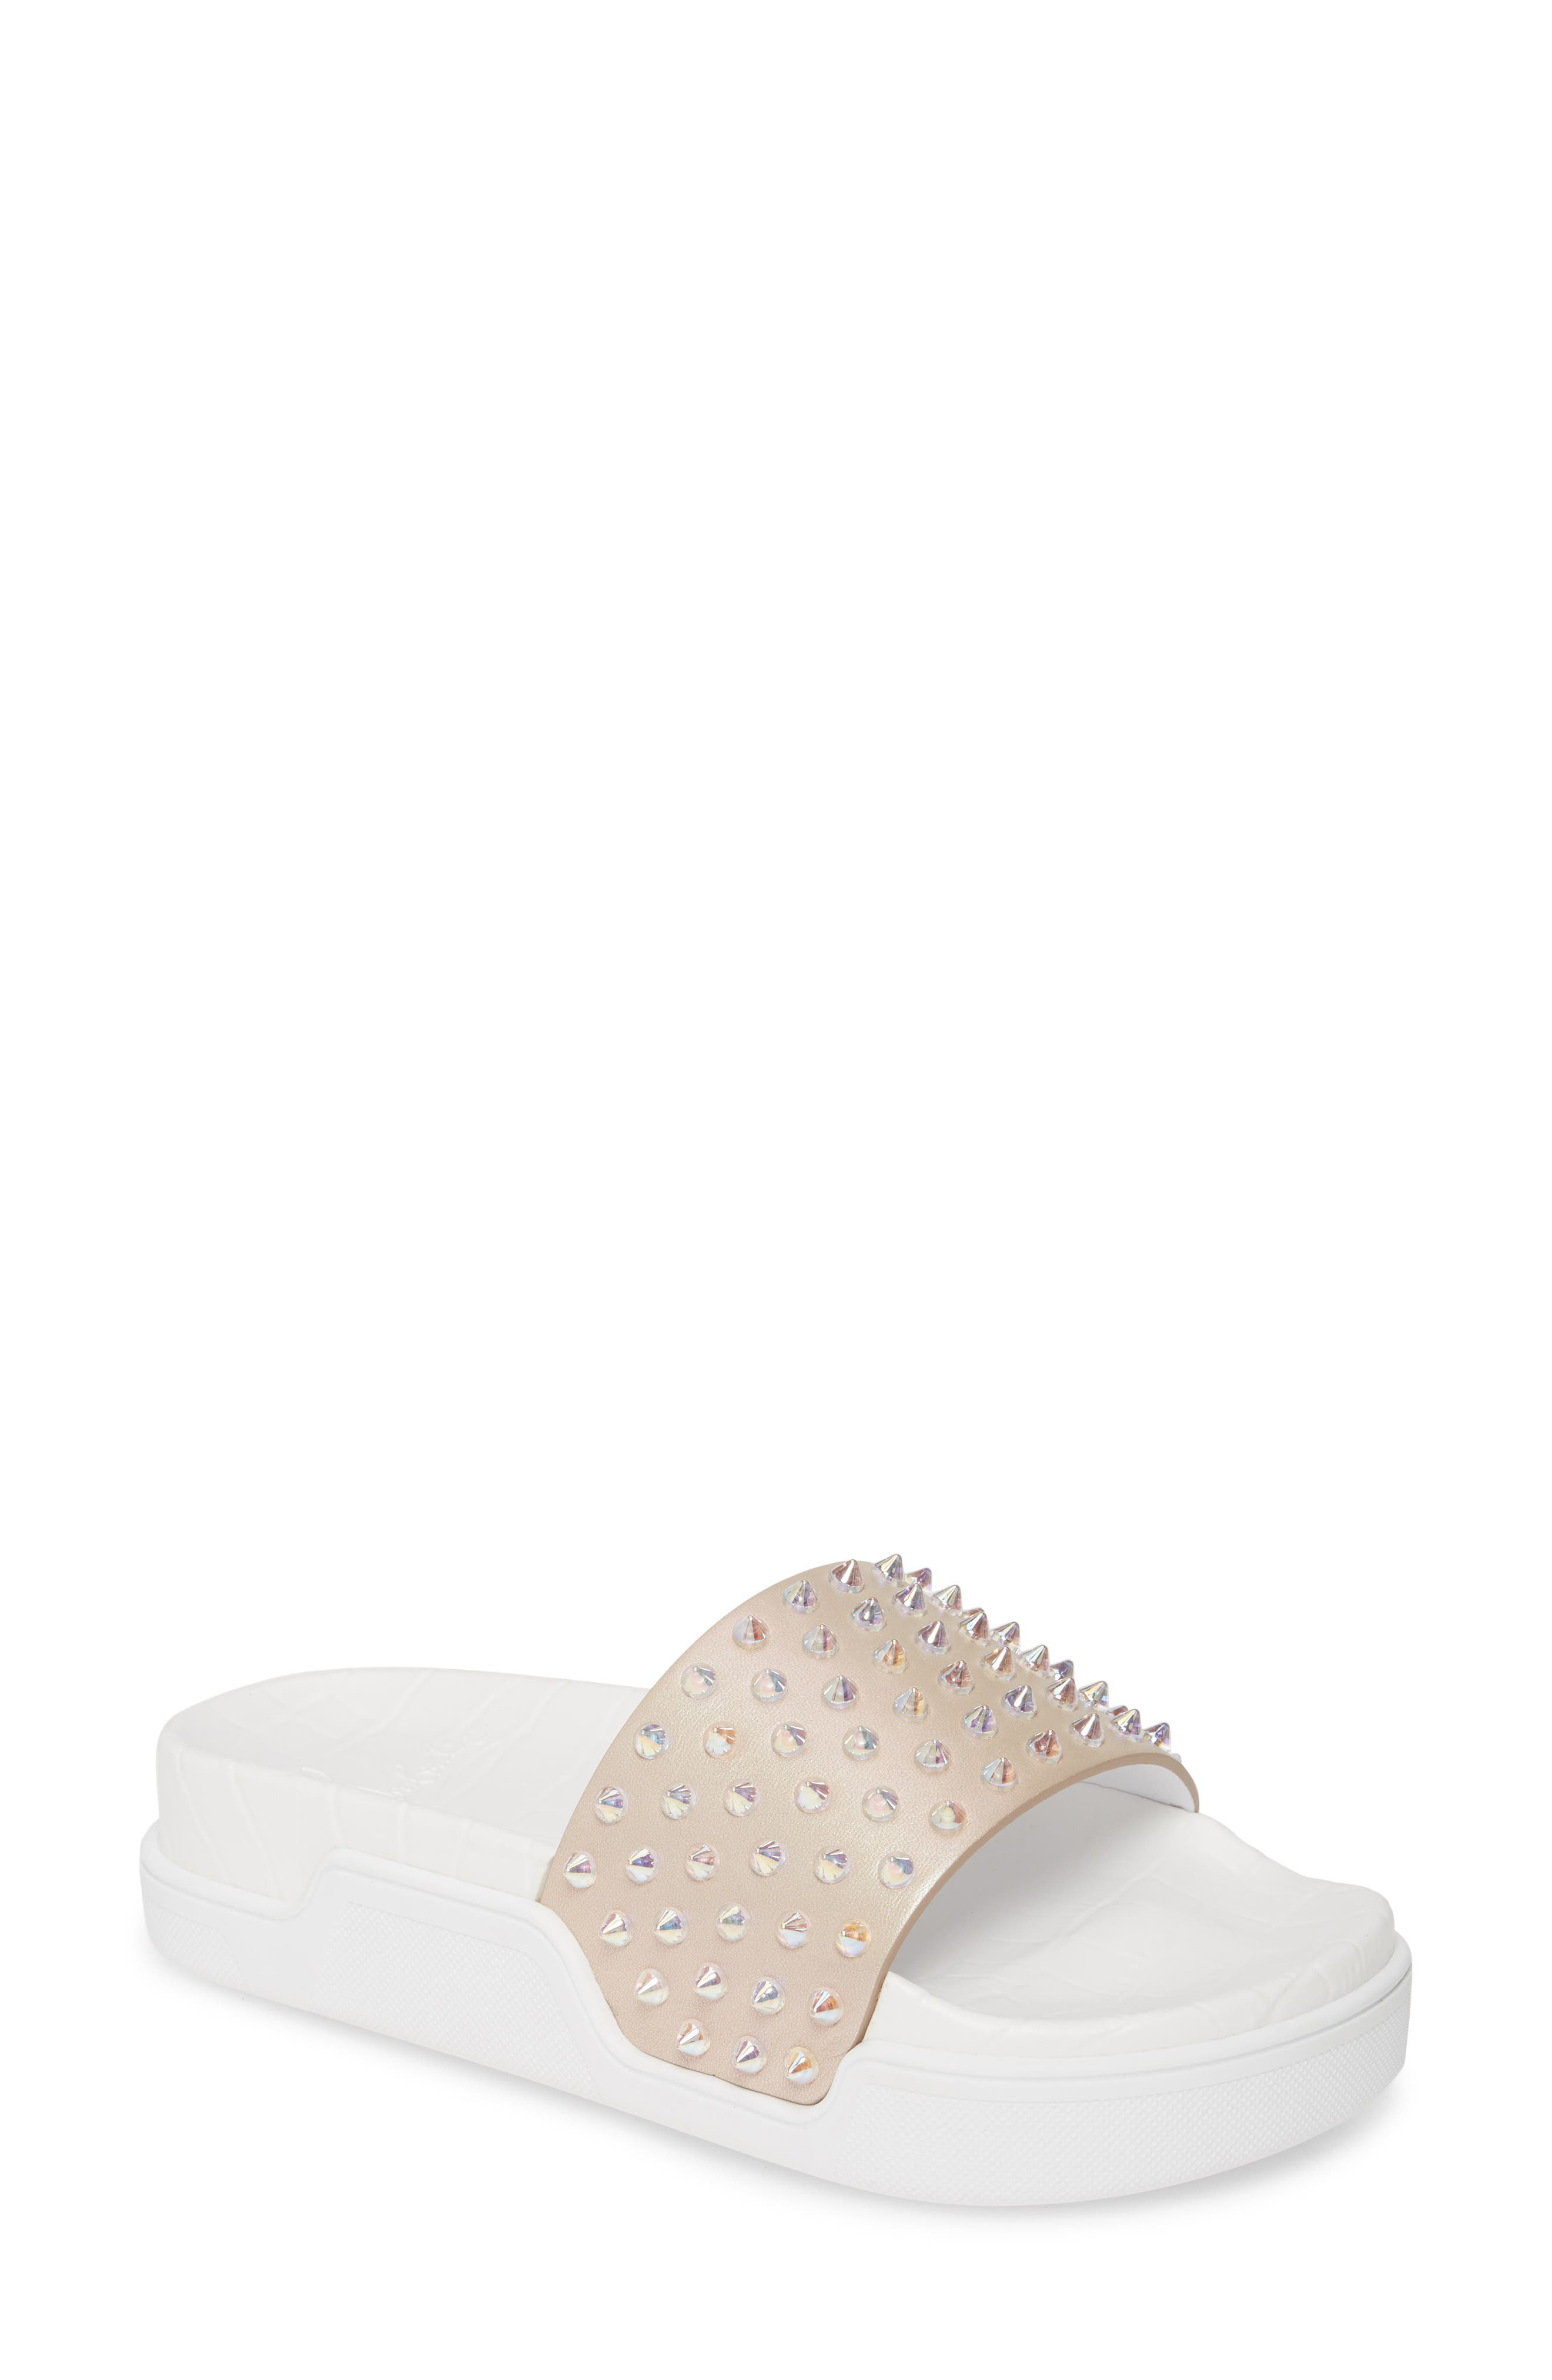 Christian Louboutin Pool Fun Sport Slide Sandal (Women)